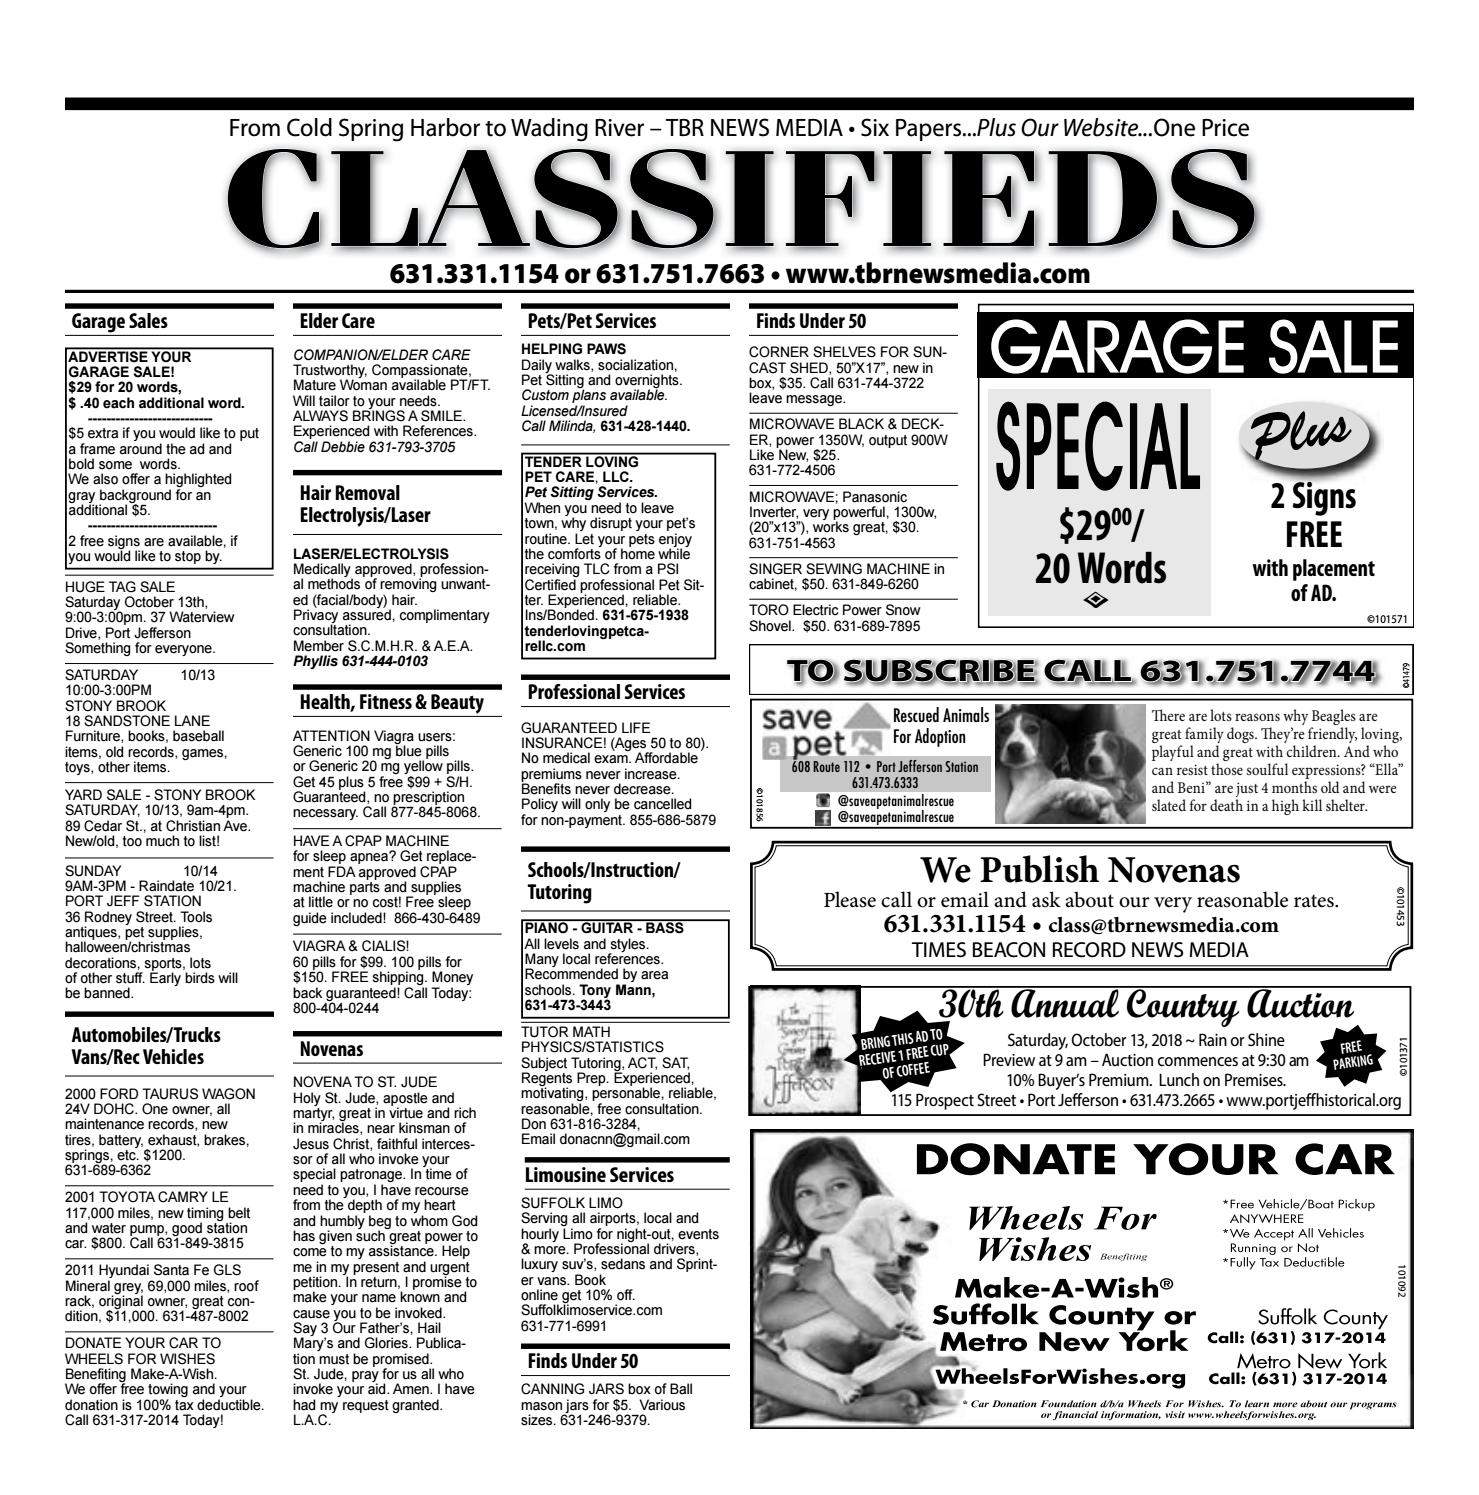 Terrific Classifieds October 11 2018 By Tbr News Media Issuu Wiring Cloud Philuggs Outletorg